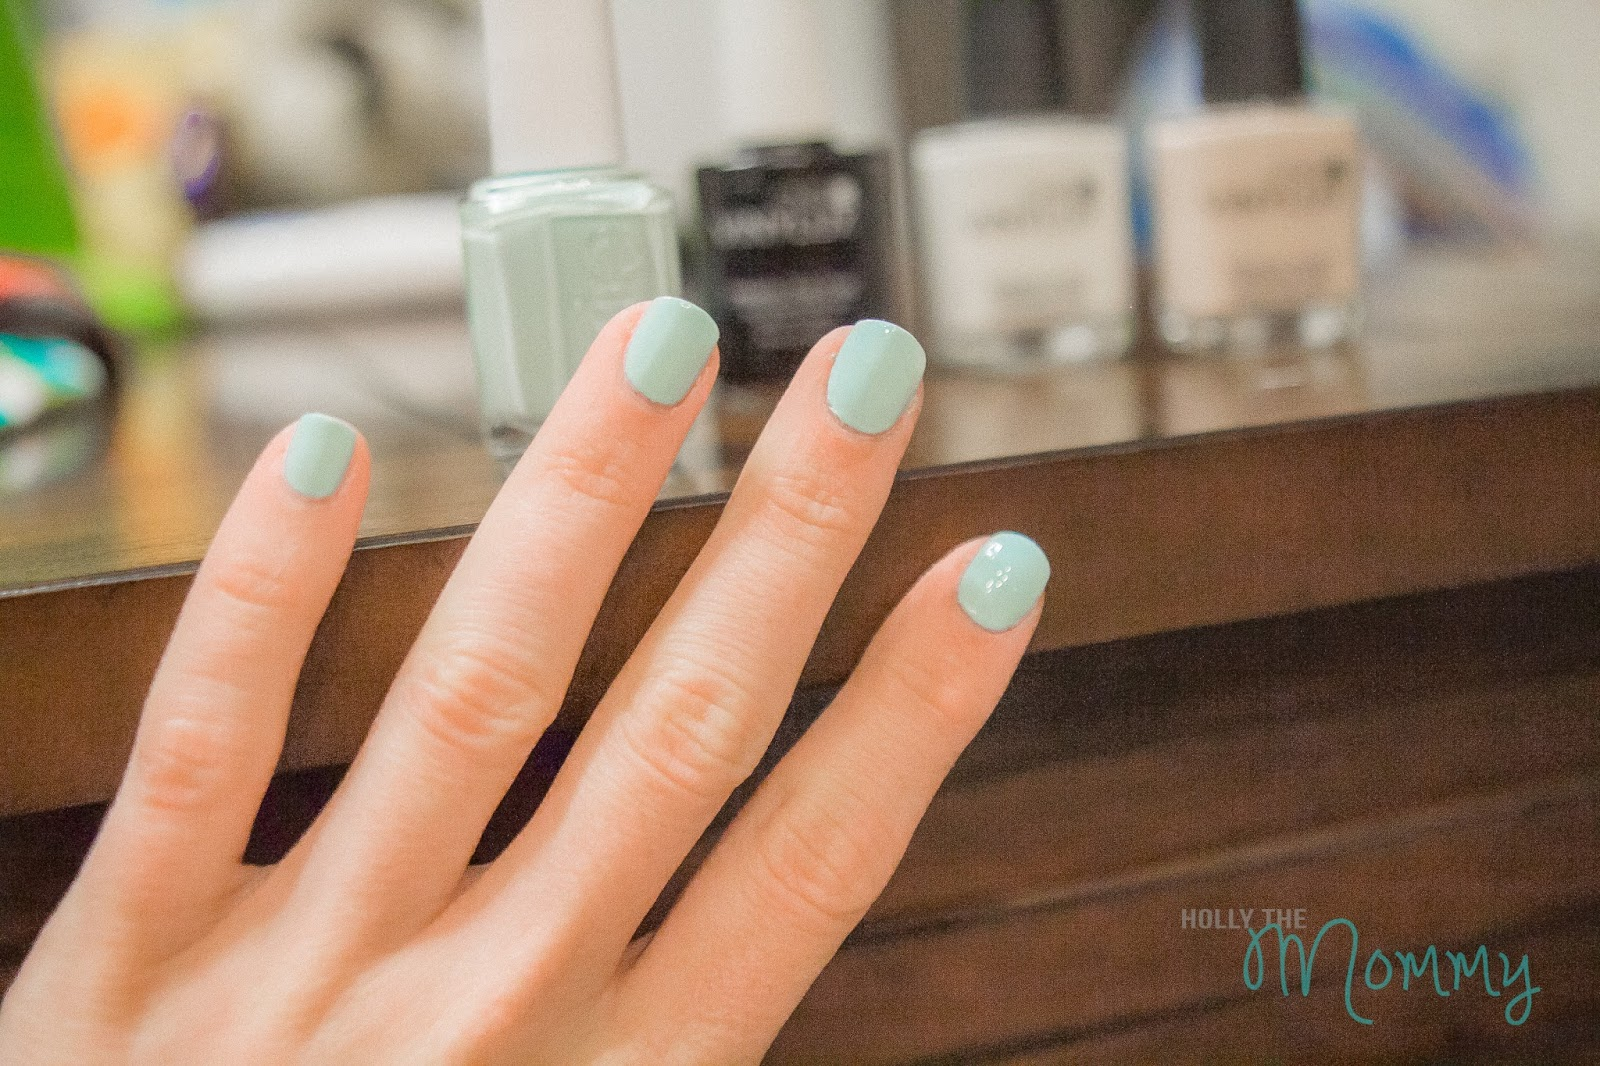 Holly the Mommy: Tasty Shades: Mint Candy Apple & Cream Puff